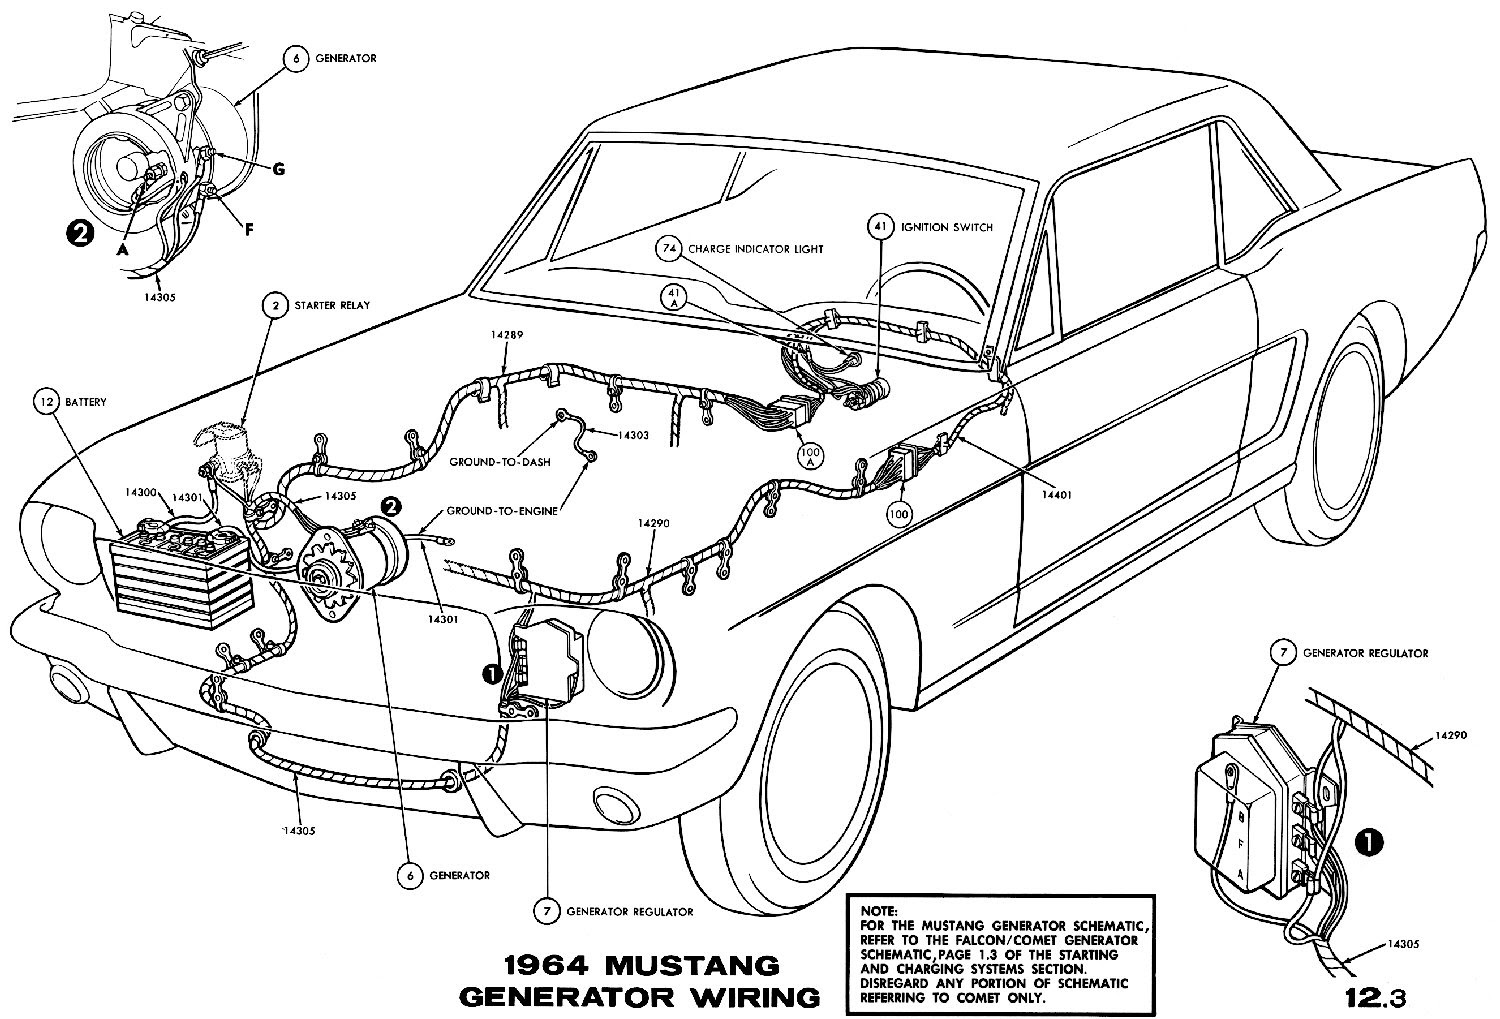 67 mustang charge light wiring diagram image 2